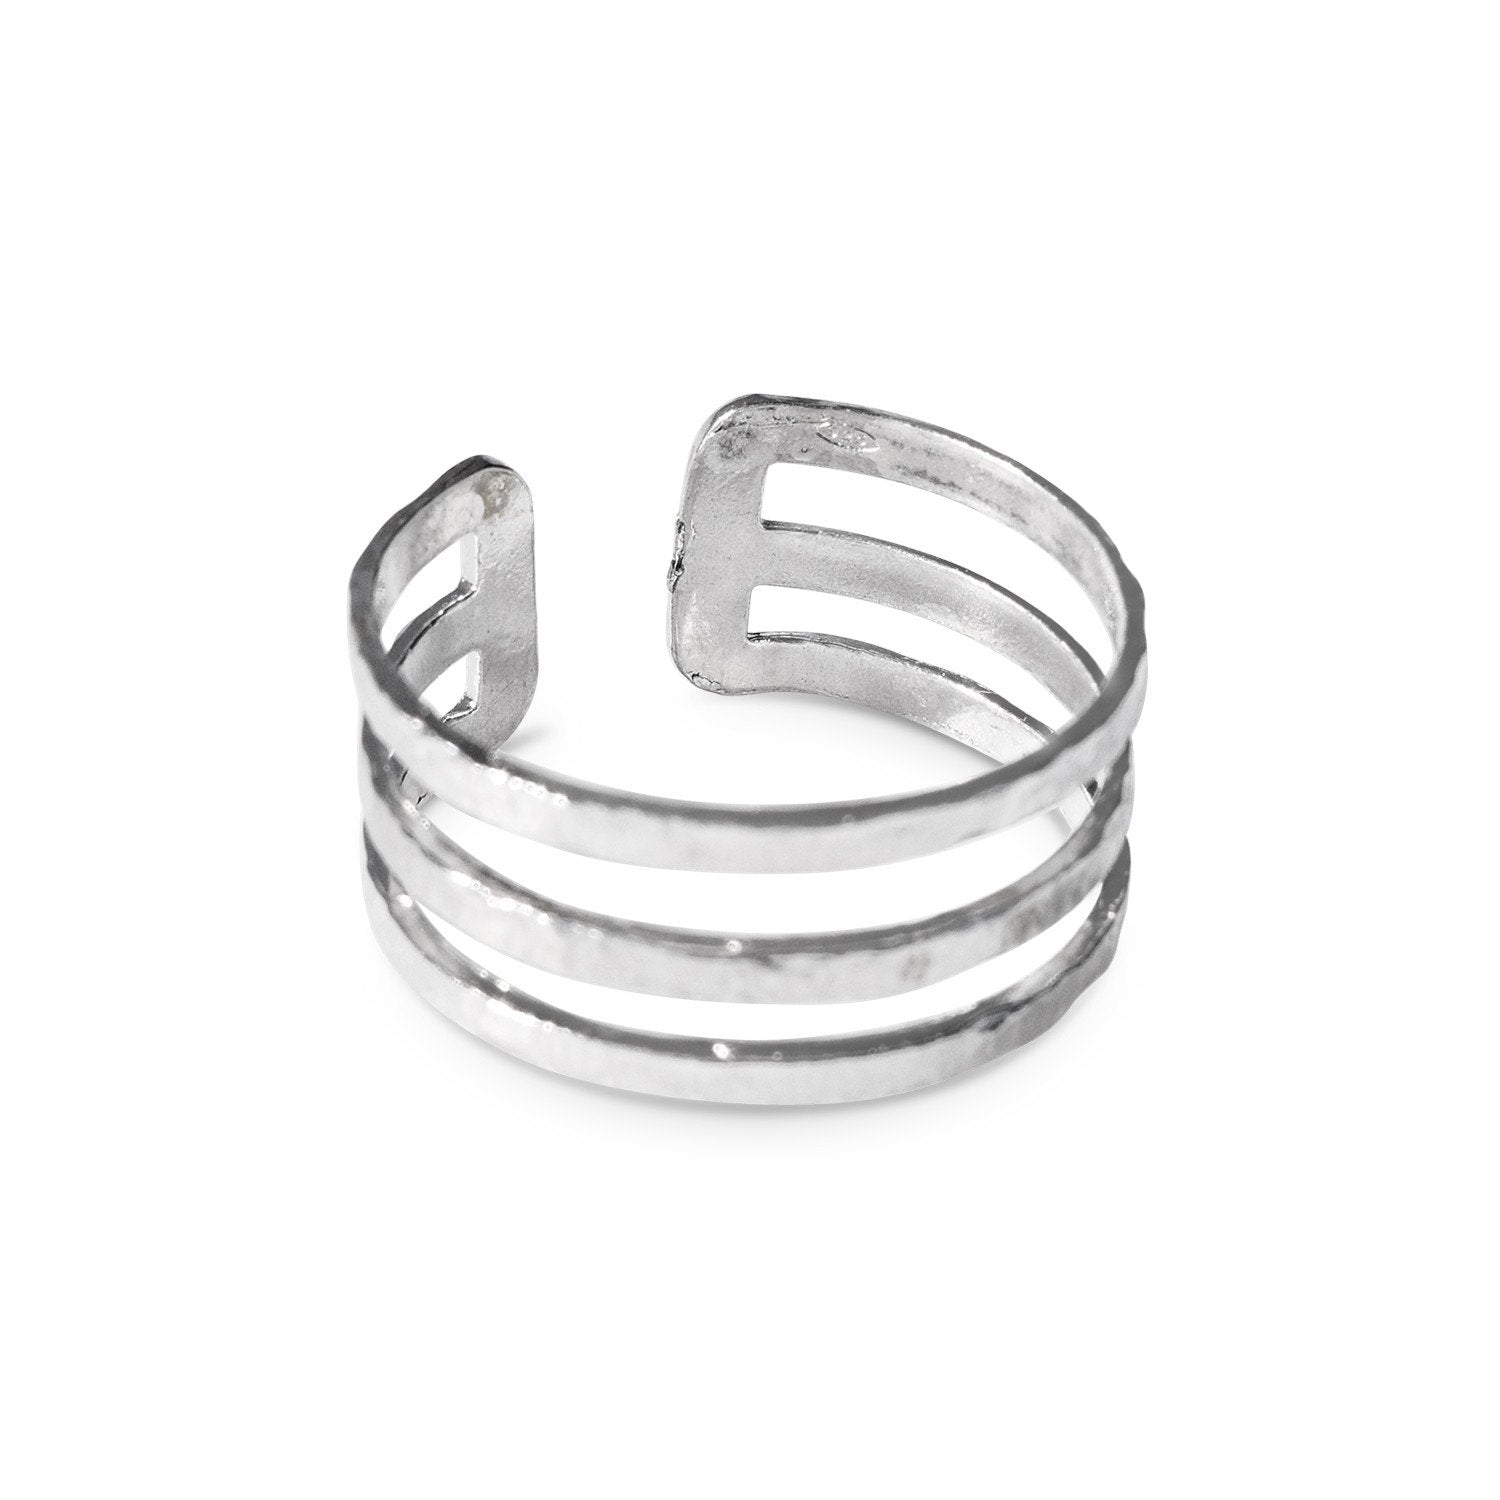 Flexible Ring with 2 Stripes Sterling silver 925